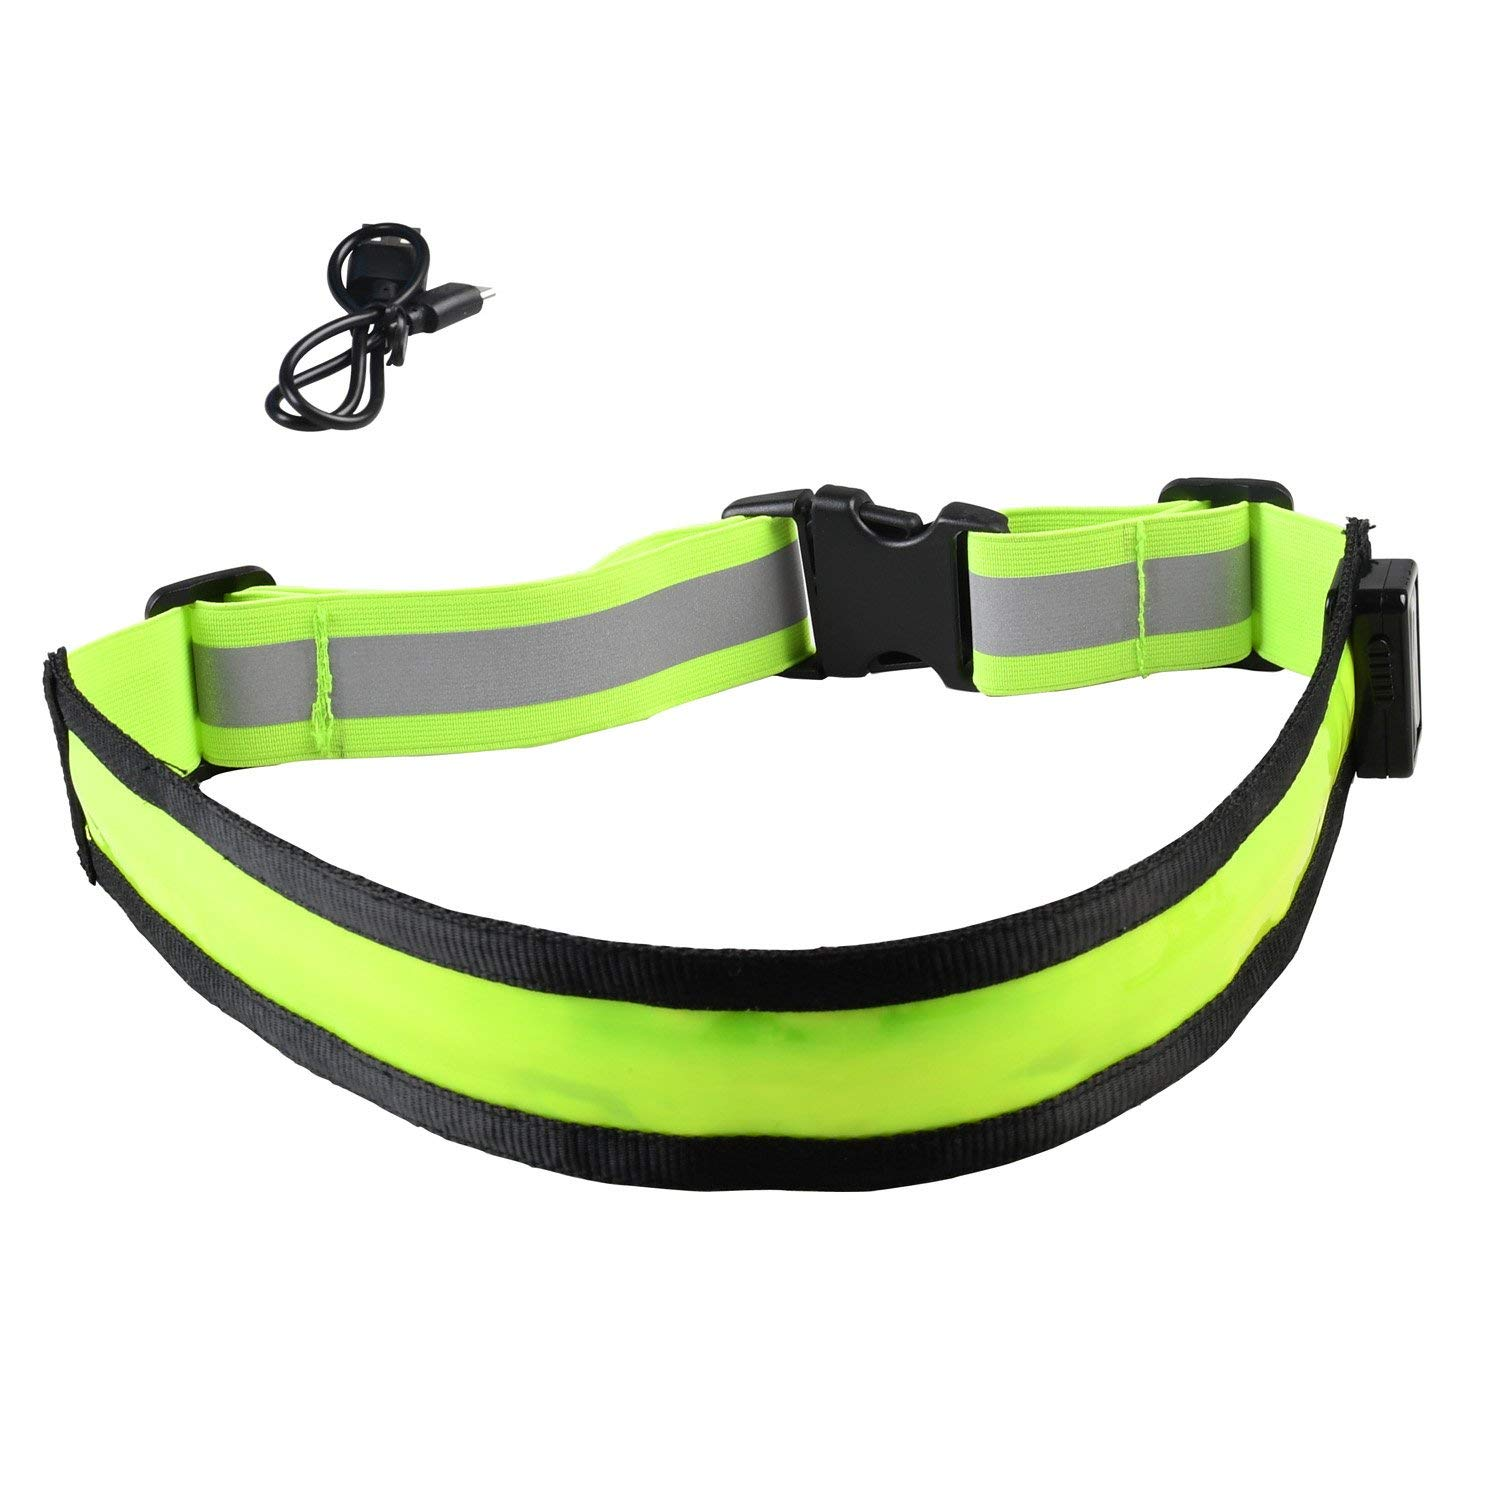 LED Light Up Running Belt Reflective Waist Belt USB Rechargeable Safety Lights Fully Adjustable Elastic Glowing Band & High Visibility Gear for Running Walking Cycling, Fits Women Men & Kids